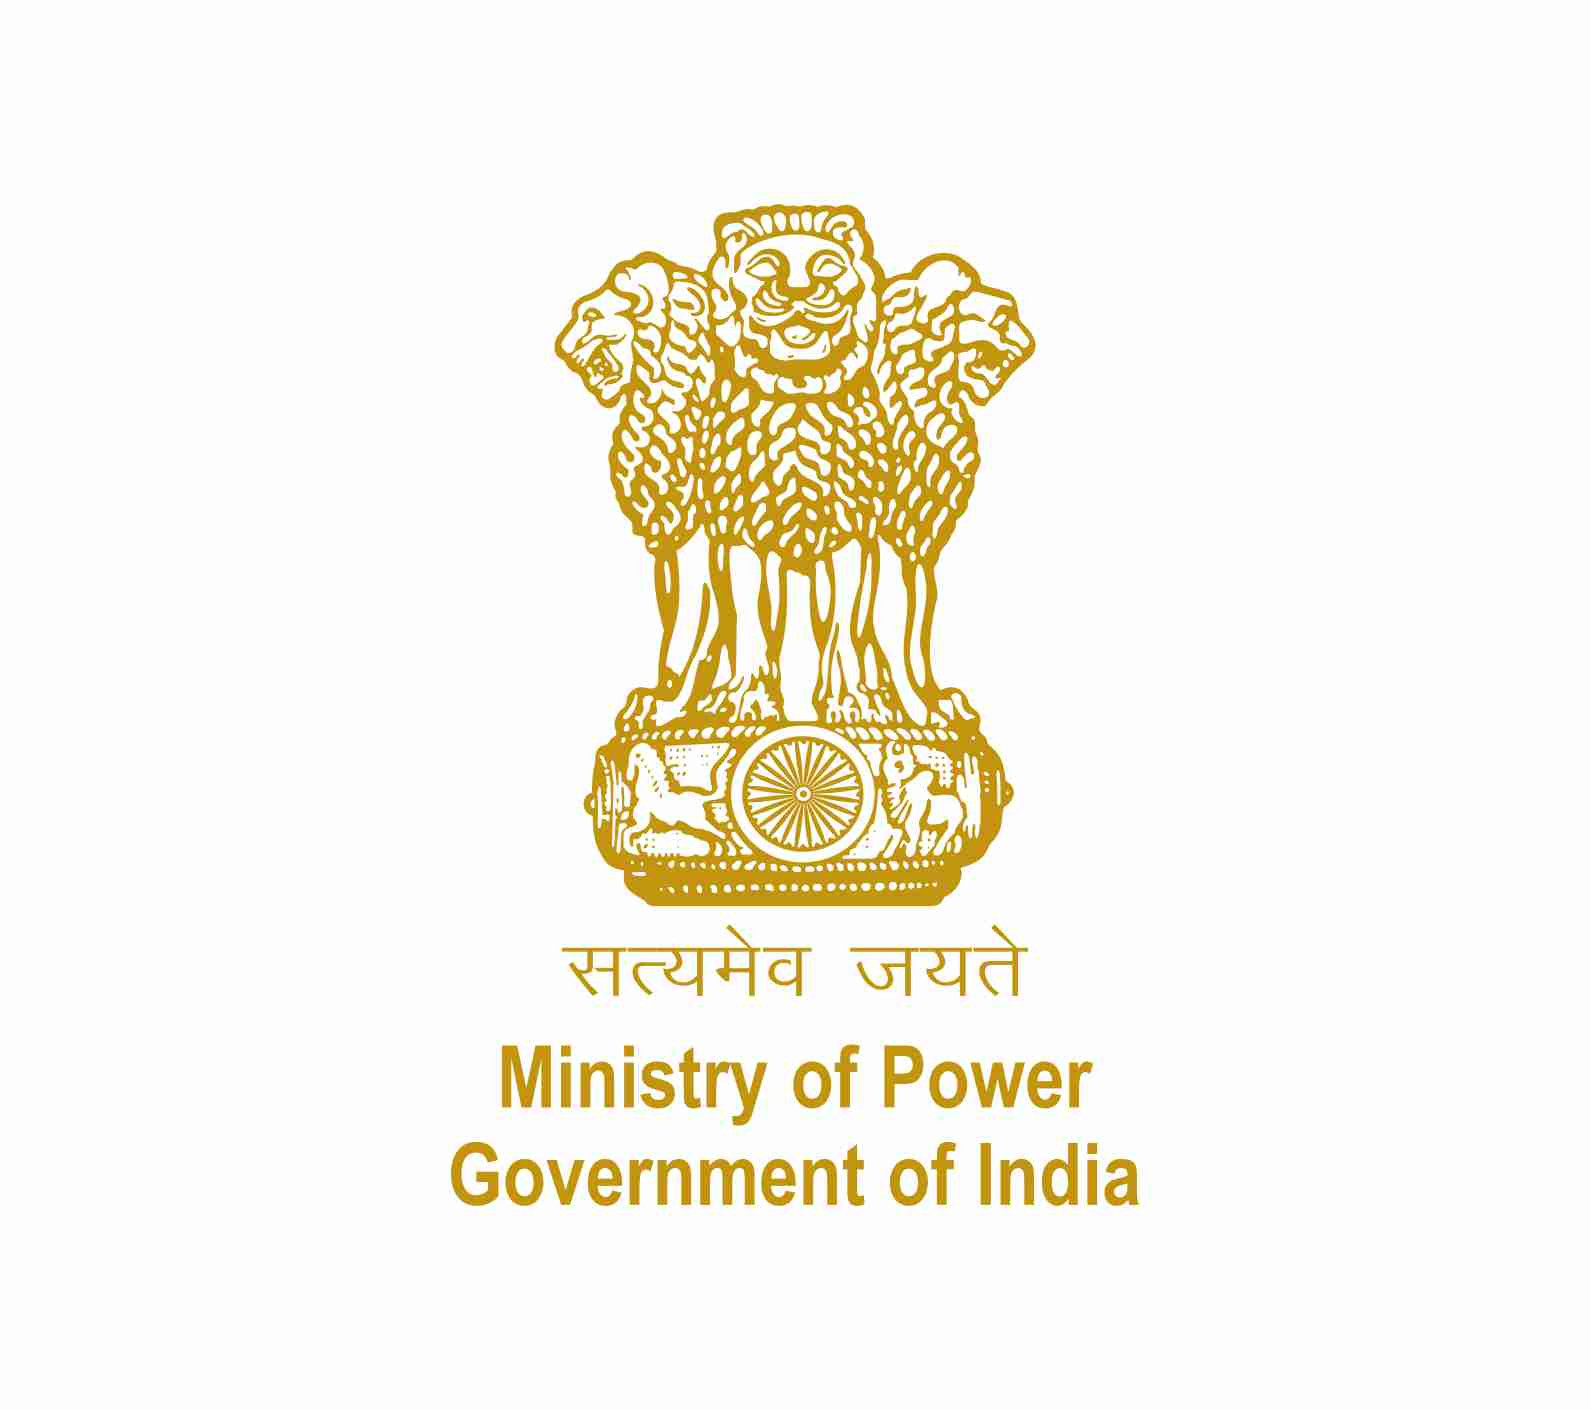 Essential operation of power generation utilities and permission for material movement needed by them during the nation-wide lockdown for COVID-19 outbreak